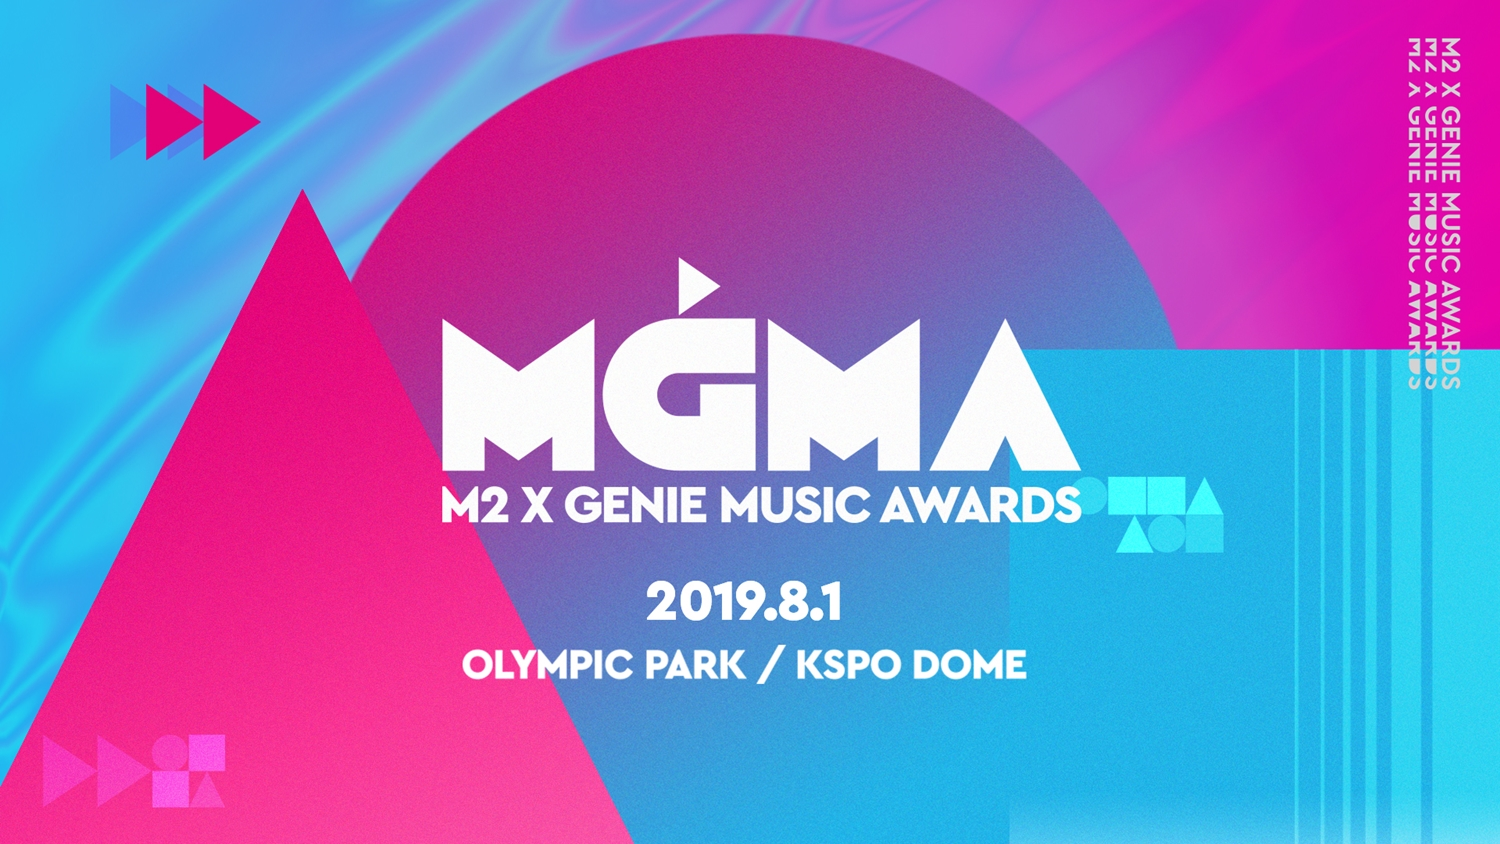 mgma, mgma 2019, mgma official, mgma lineup, mgma winners, mgma ticket, mgma venue